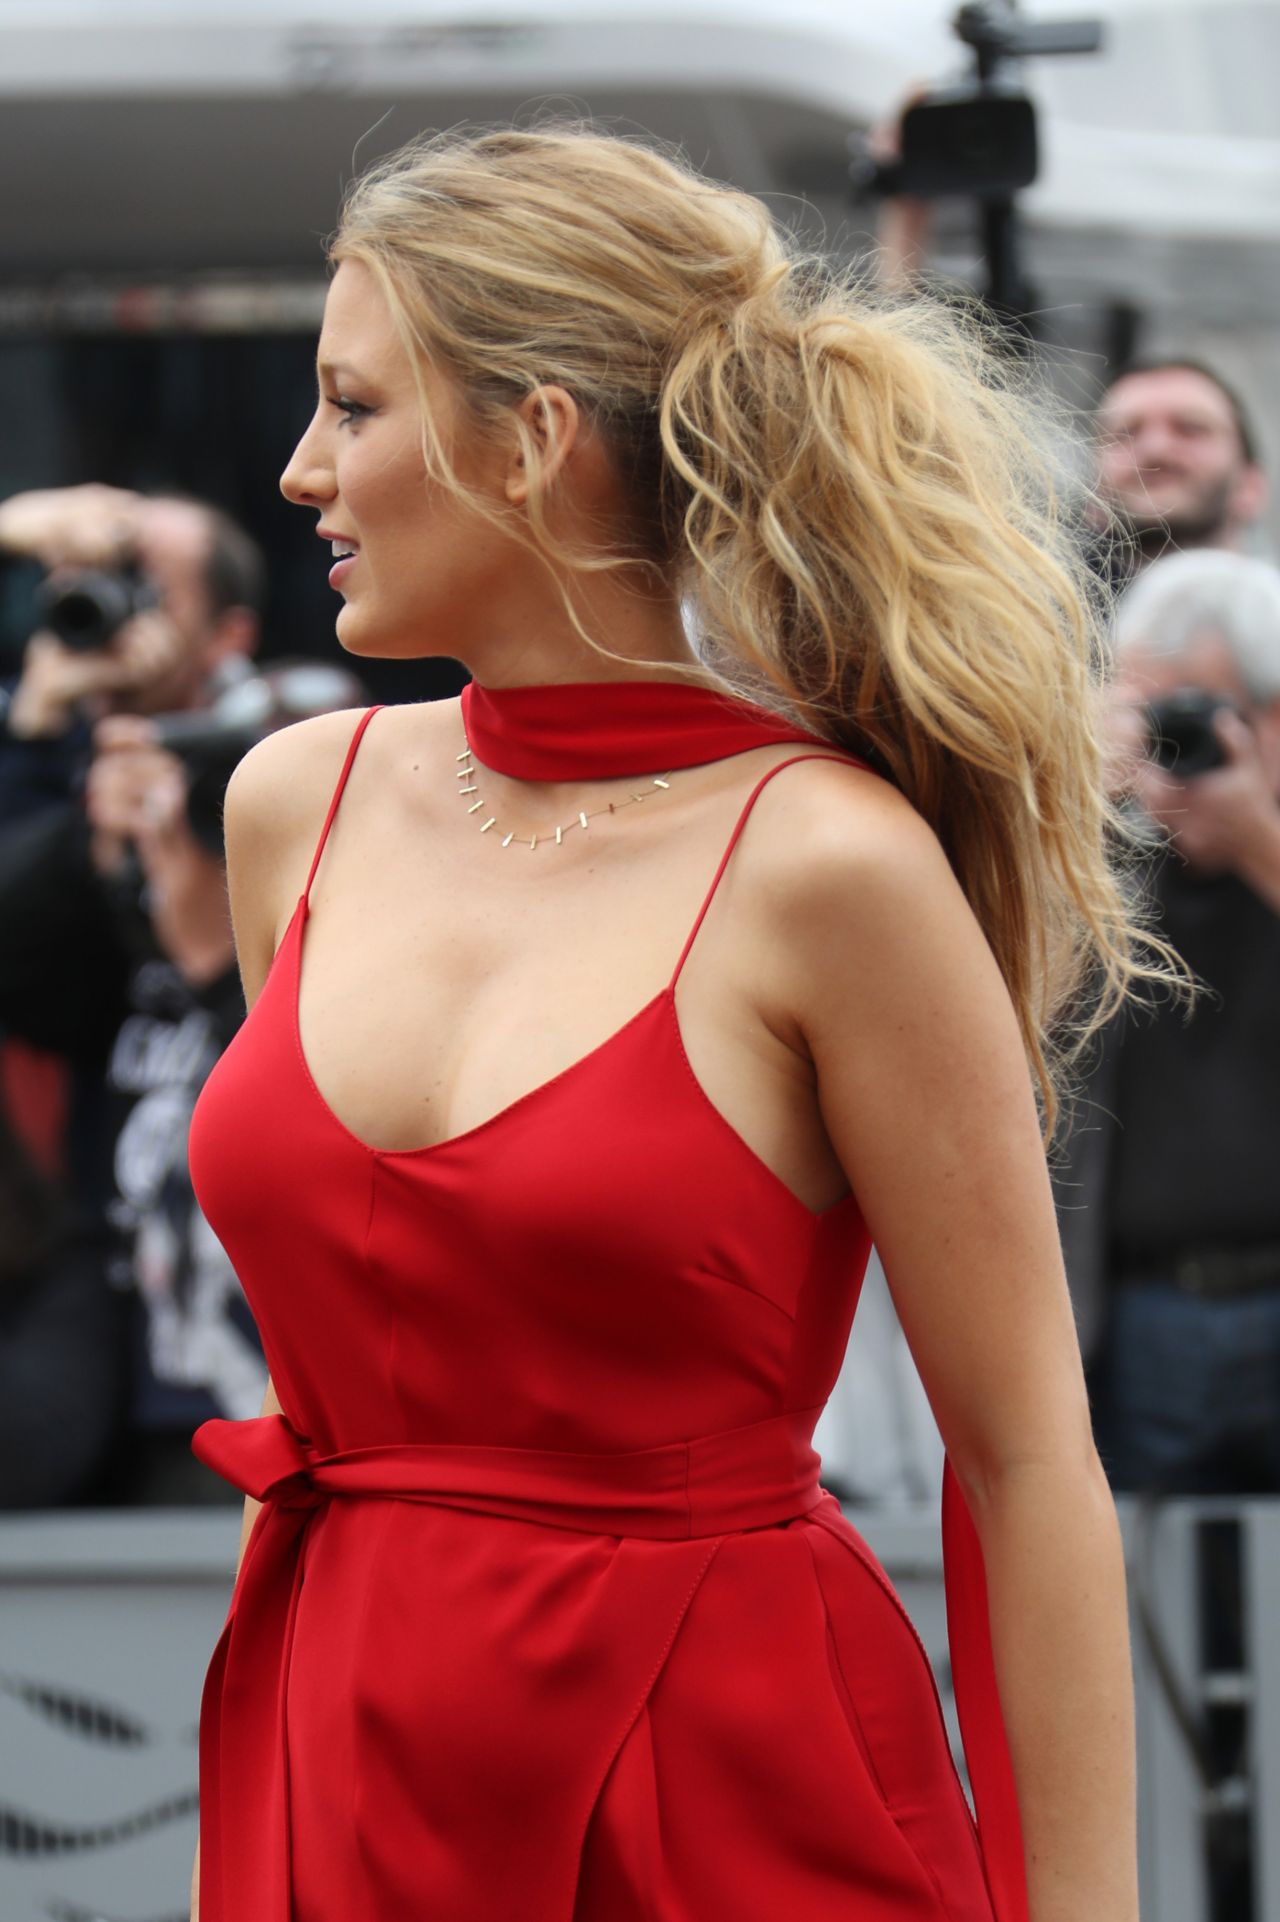 blake lively red dress makeup - photo #3